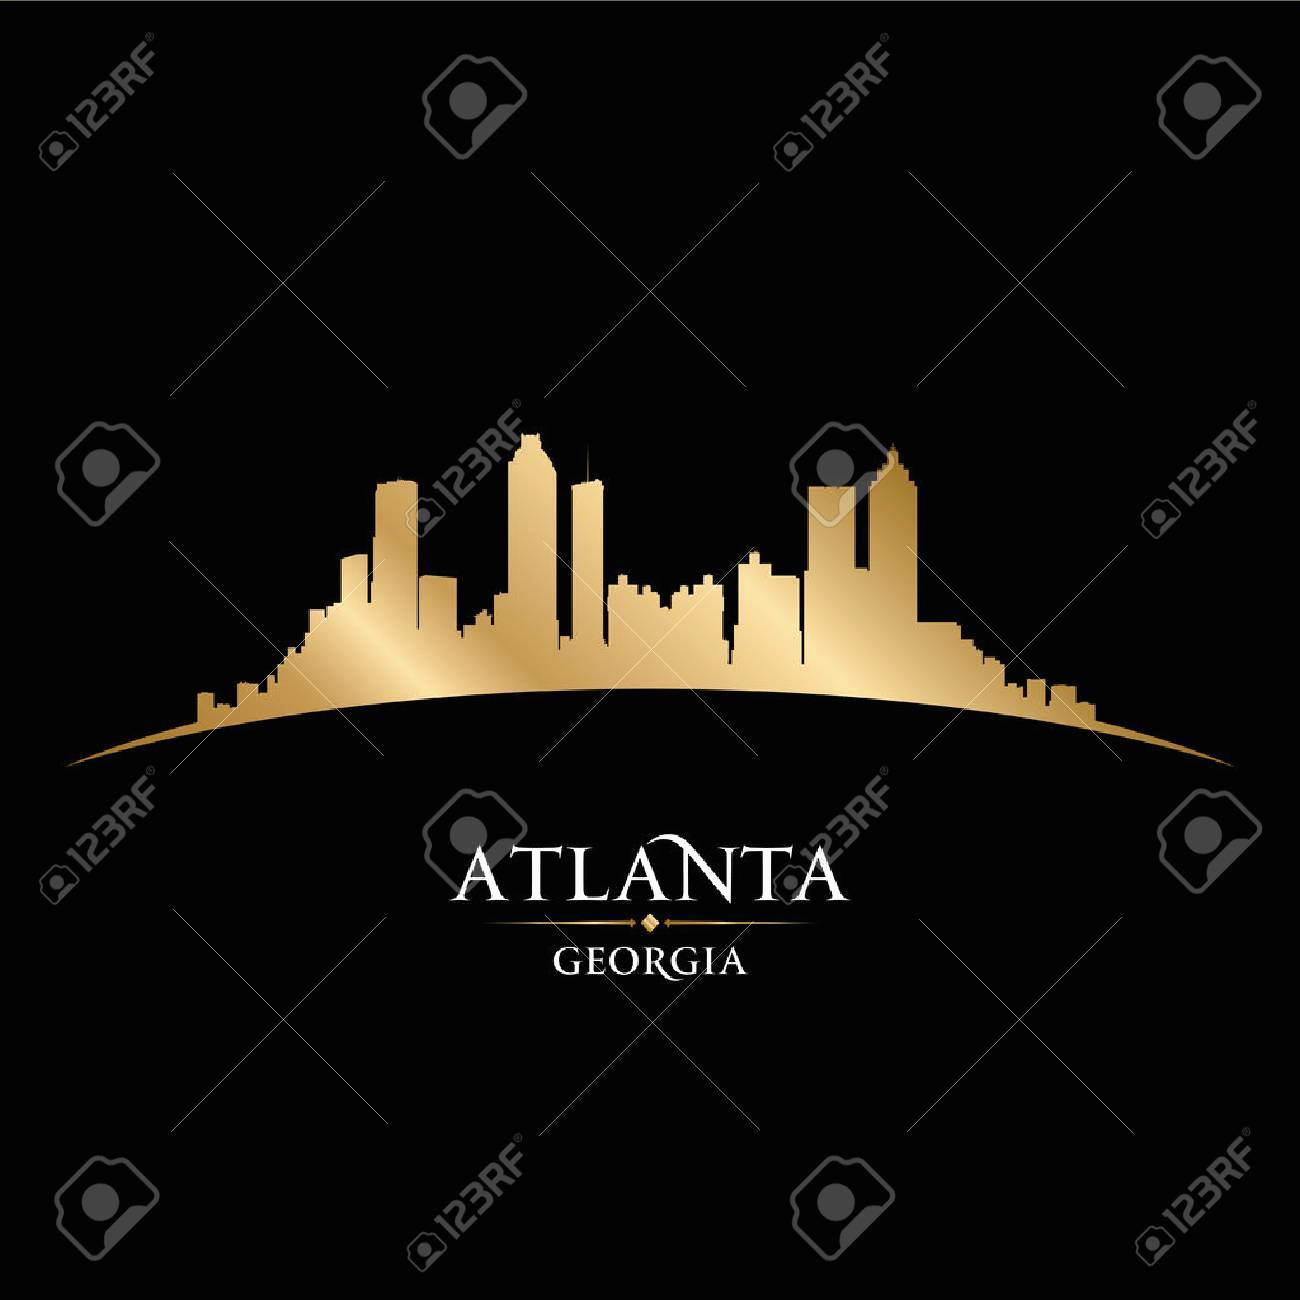 1300x1300 Atlanta Skyline Vector Elegant Atlanta Georgia City Skyline